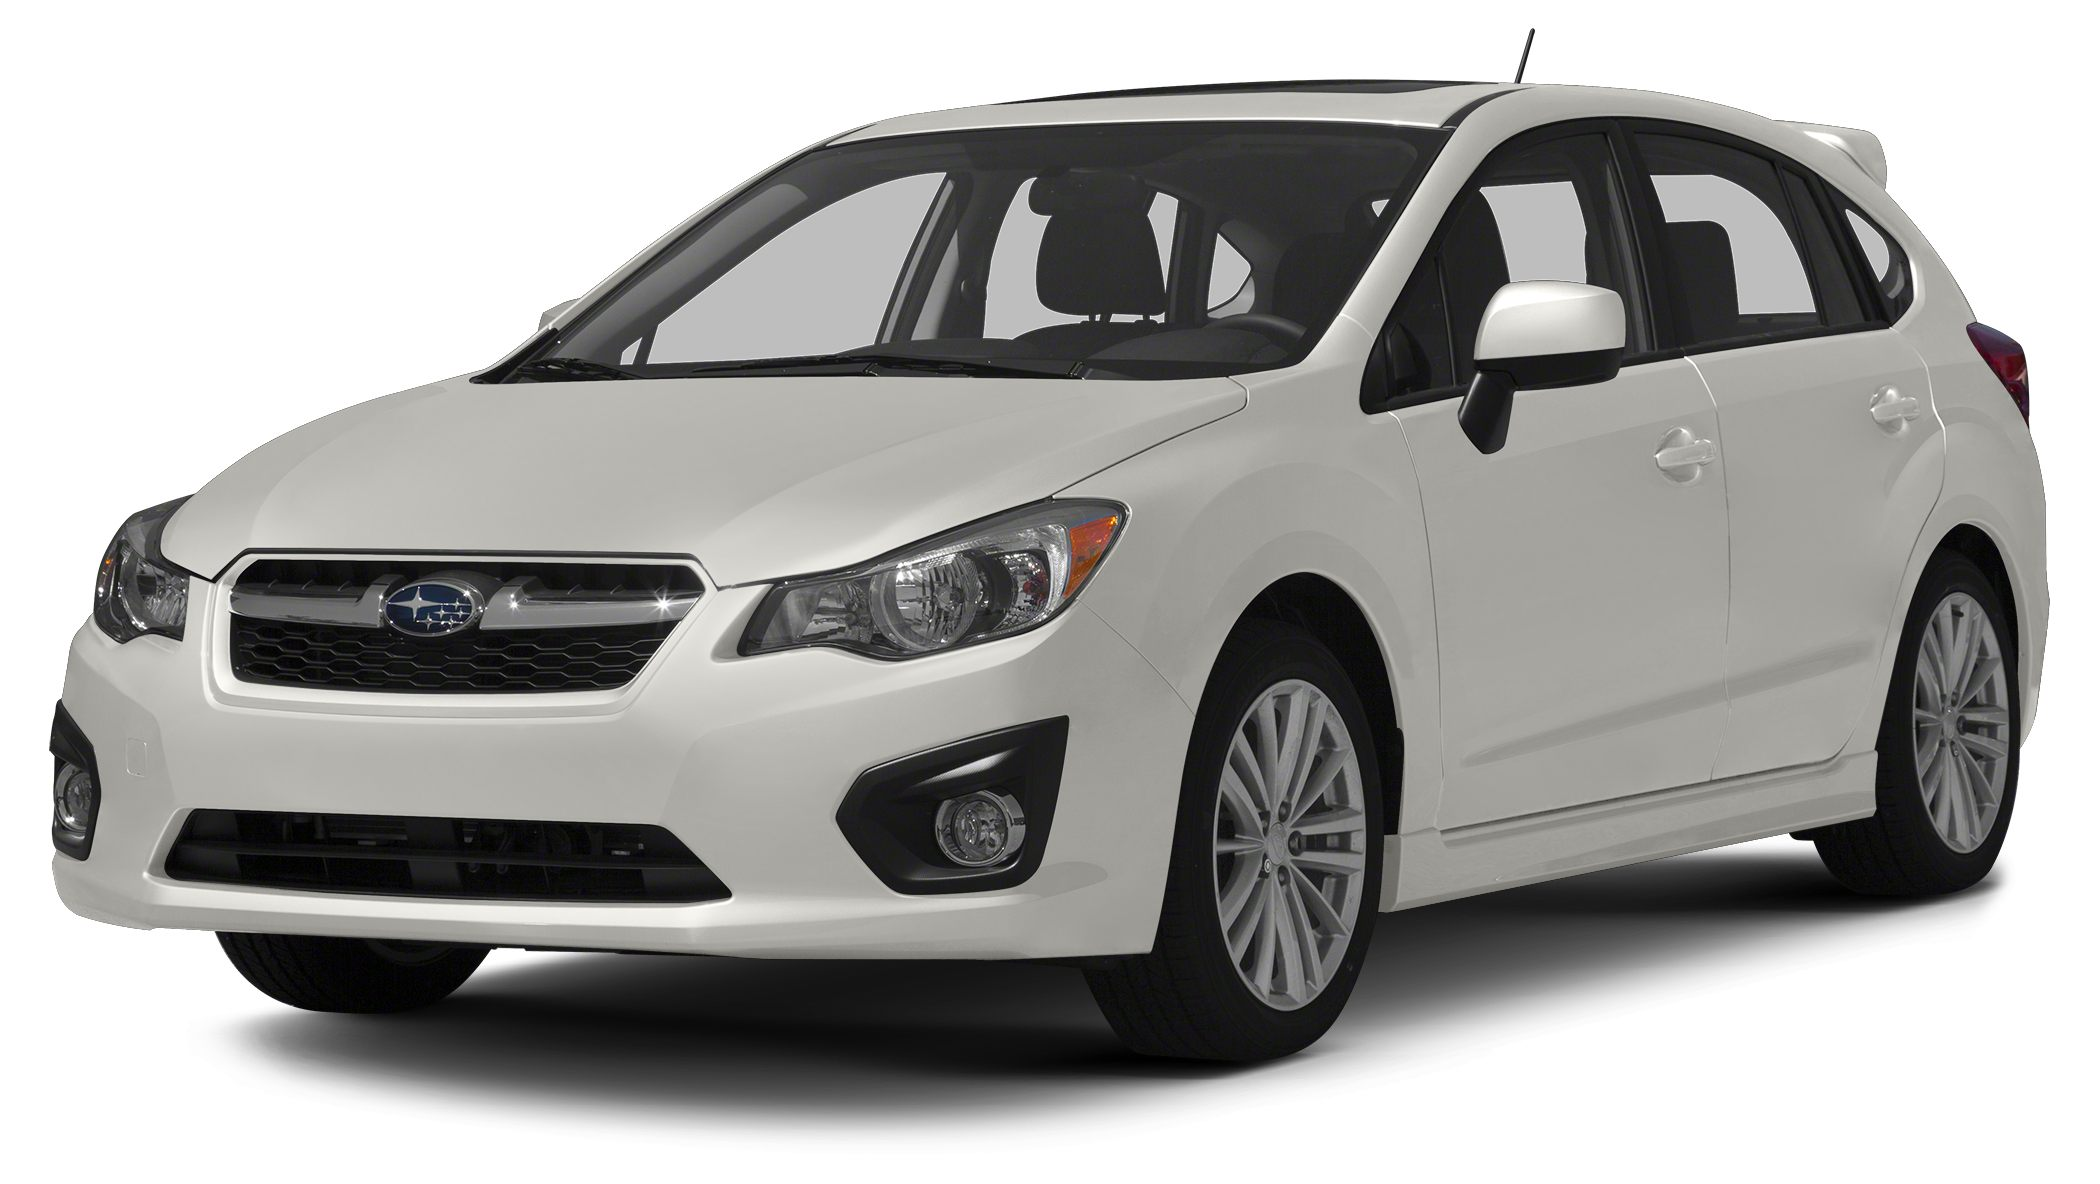 2013 Subaru Impreza 20i Limited Miles 36244Color Satin White Pearl Stock U2271 VIN JF1GPAH6